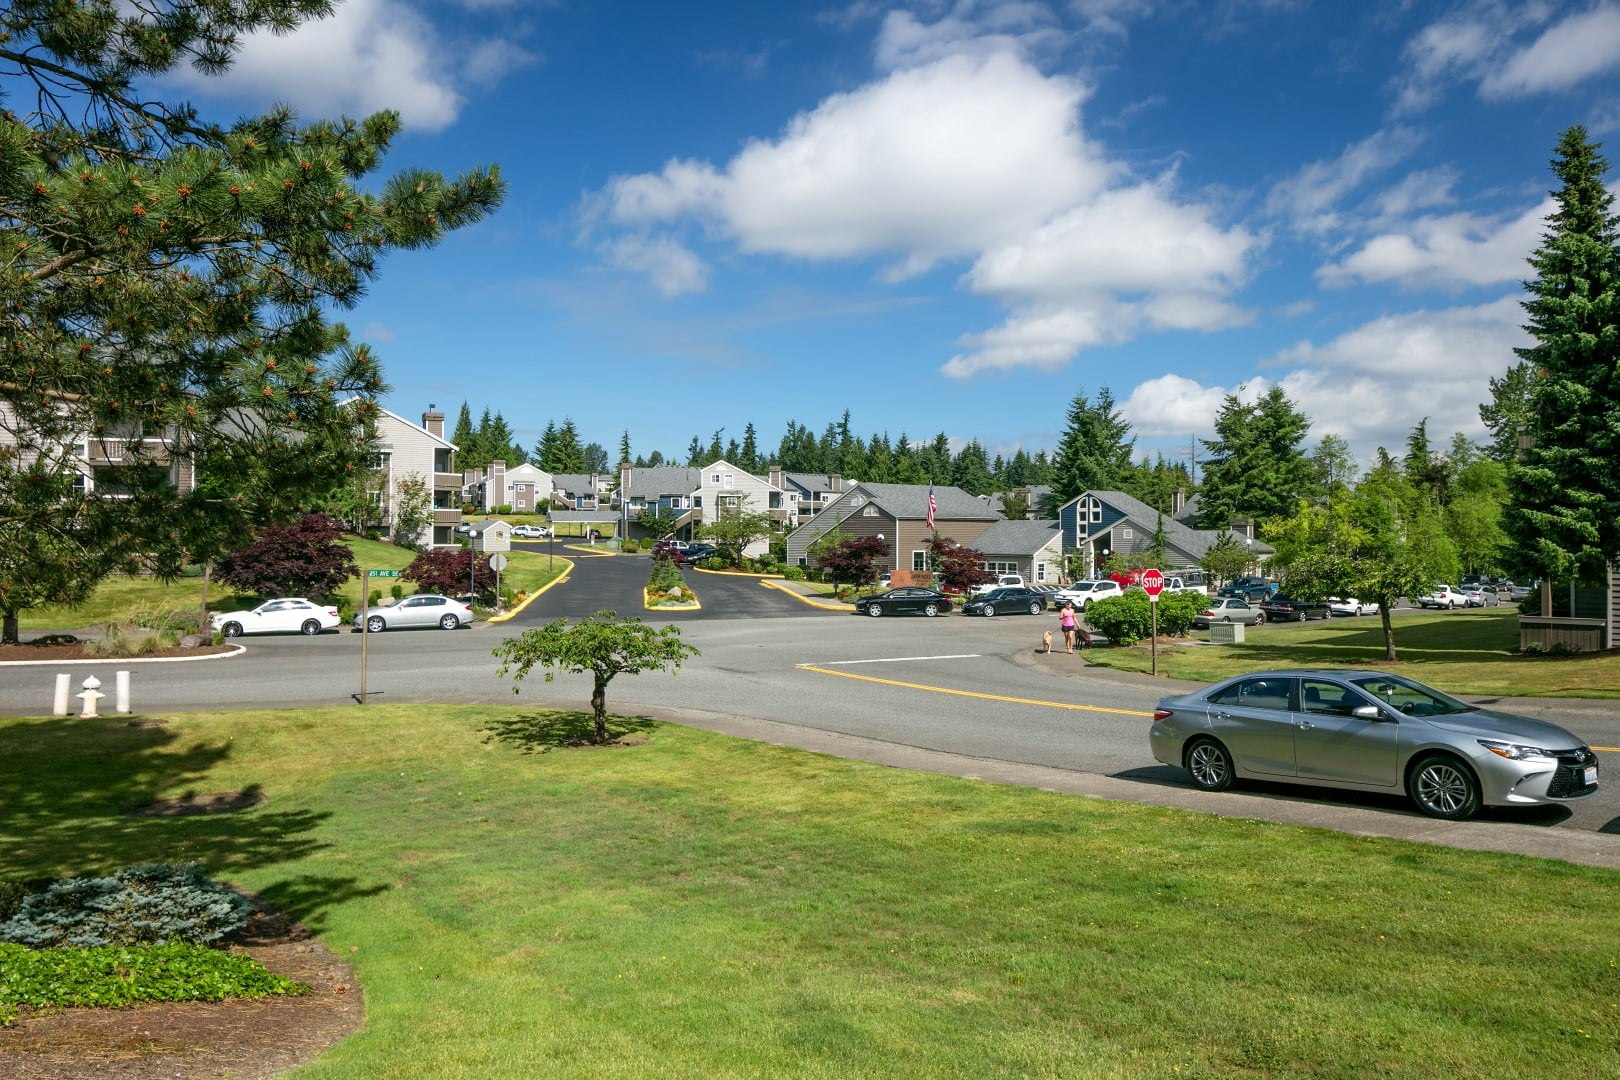 Learn about our neighborhood at The Carriages at Fairwood Downs in Renton, WA on our website